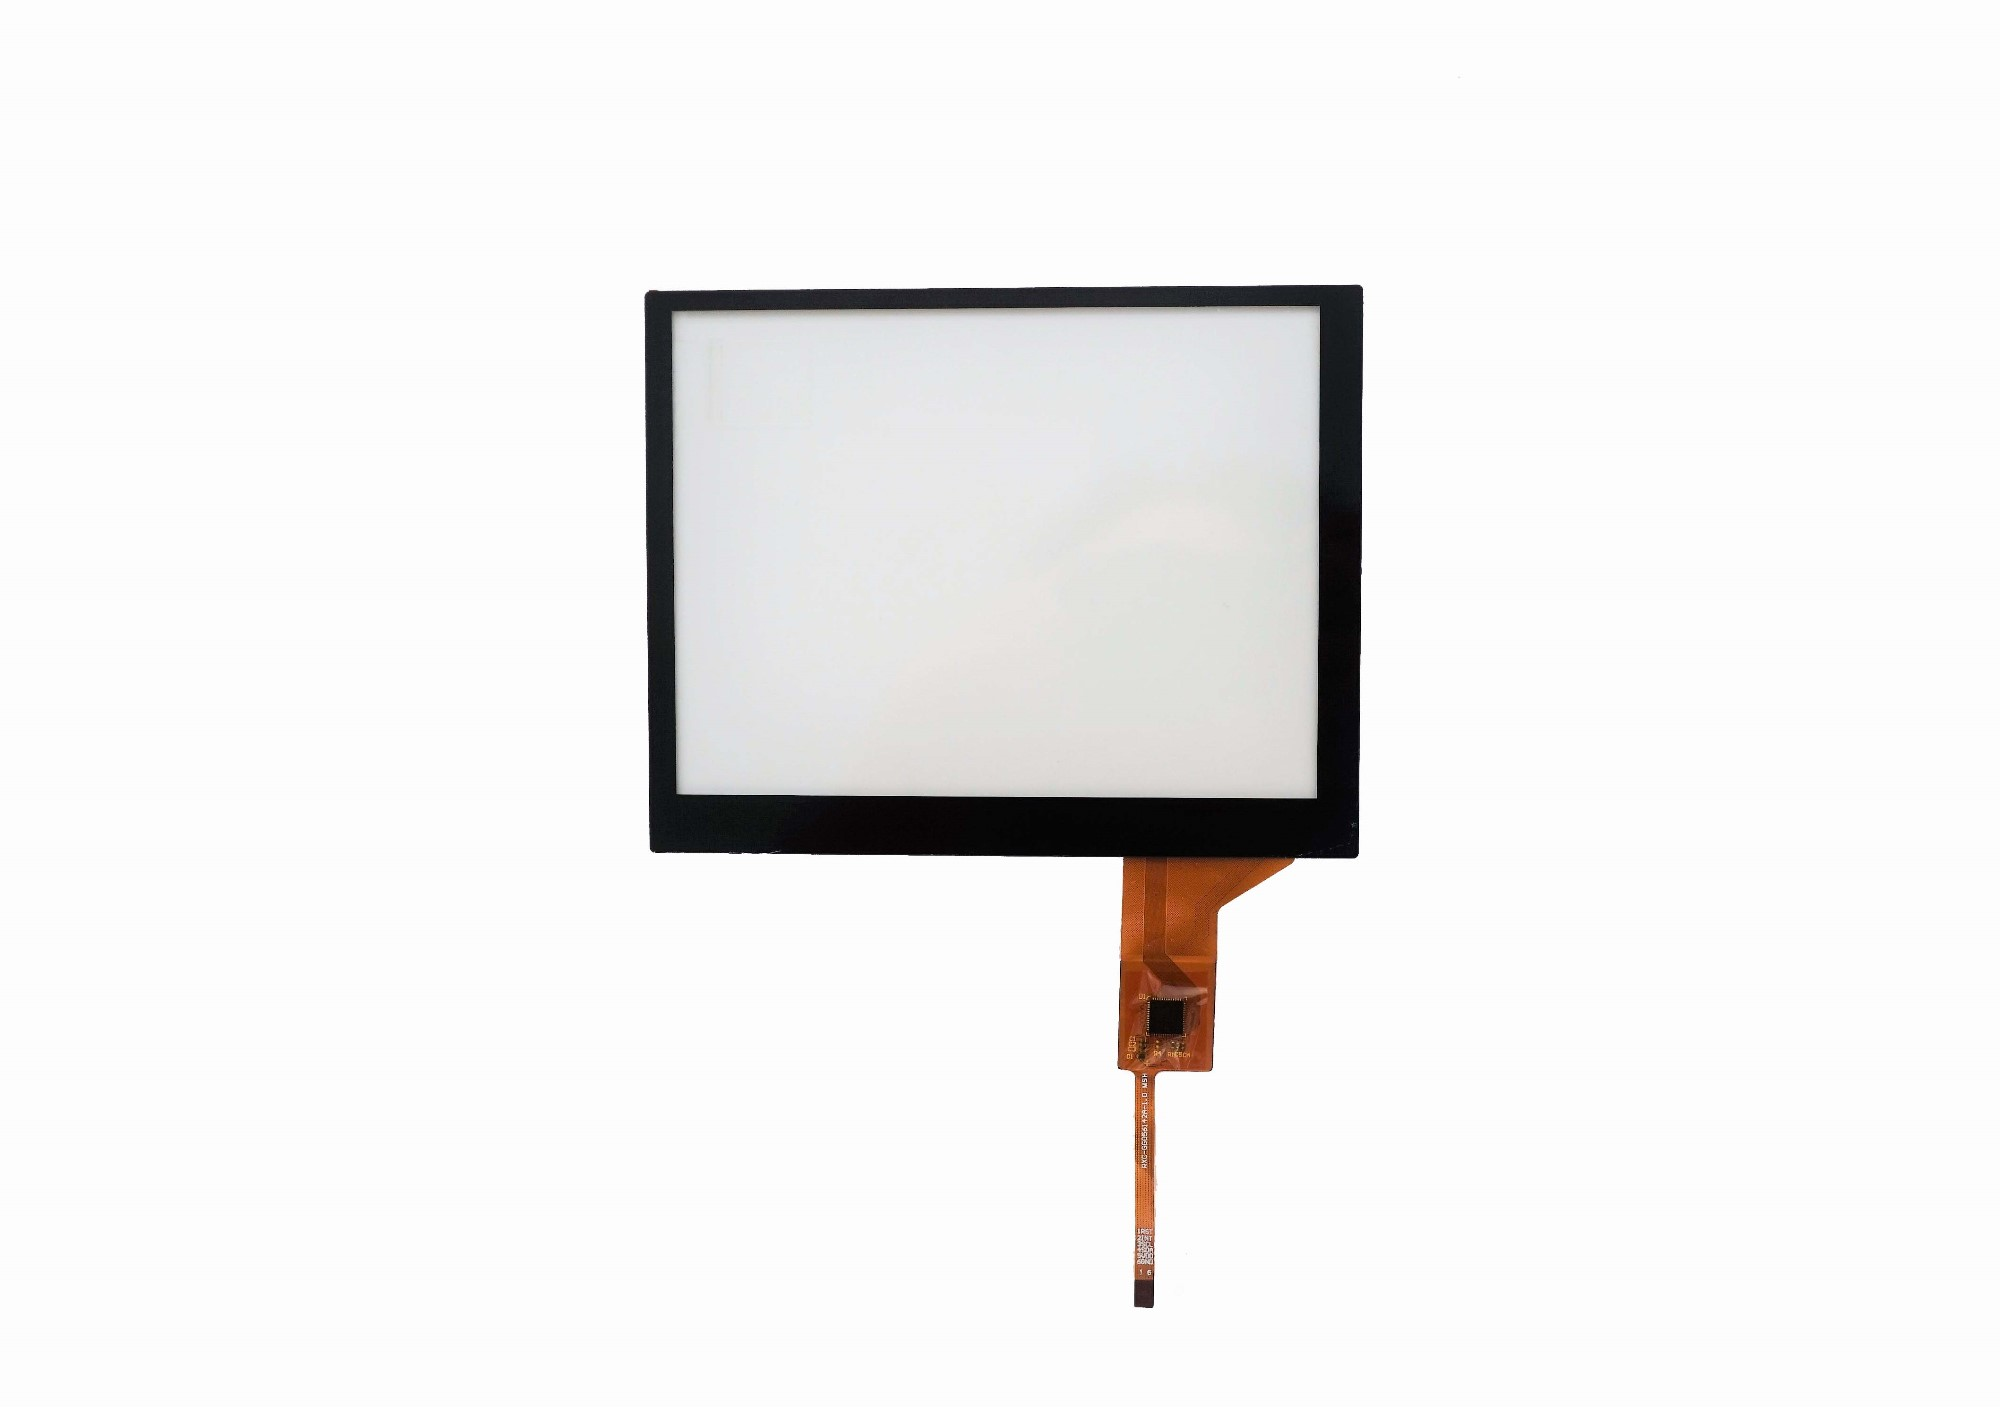 Custom China 5.6 Inch Medical Devices Open Frame Pcap Touch Screen, 5.6 Inch Medical Devices Open Frame Pcap Touch Screen Factory, 5.6 Inch Medical Devices Open Frame Pcap Touch Screen OEM